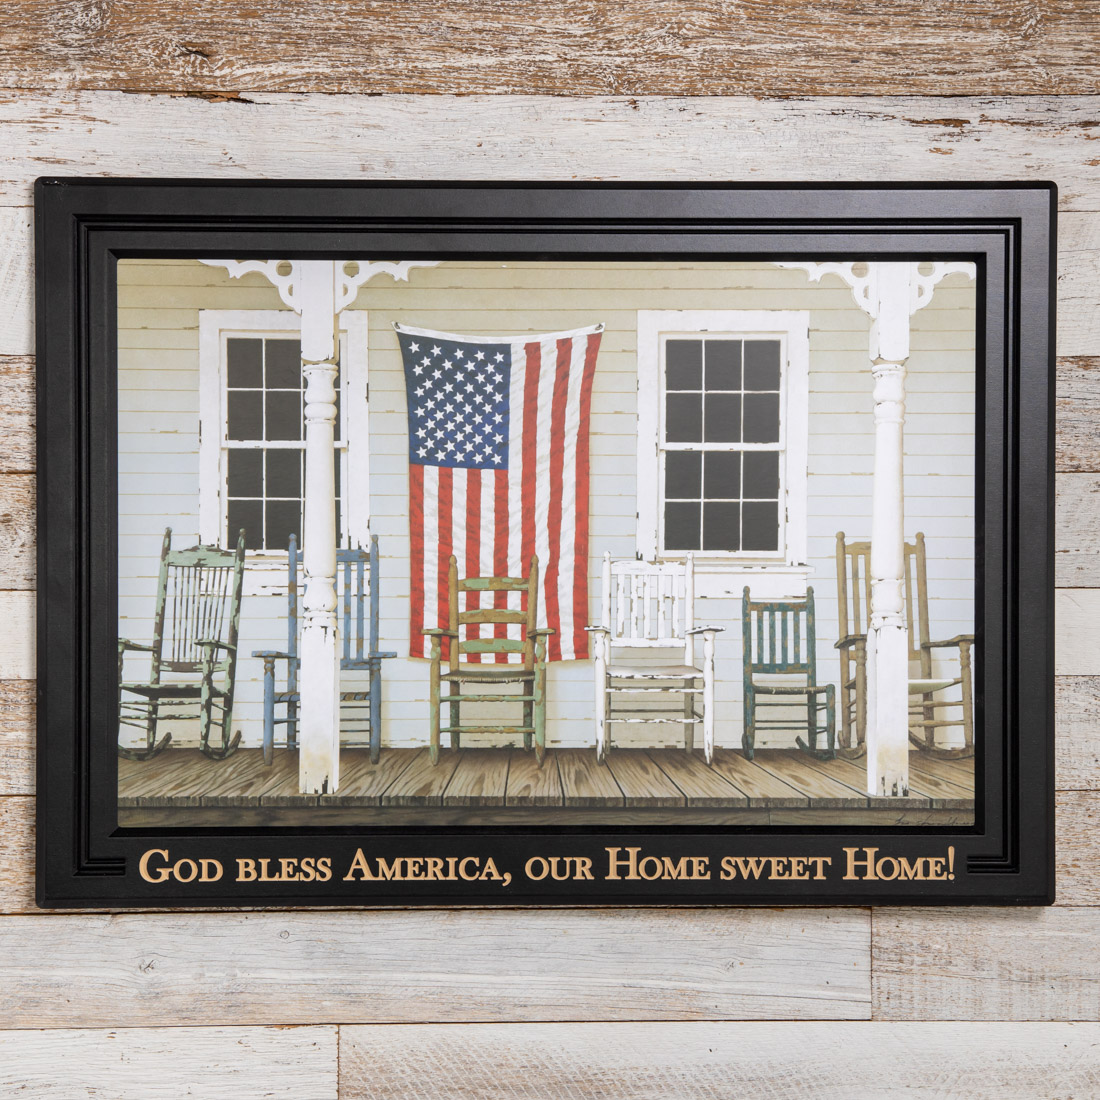 Front Porch Framed Wall Decor Cracker Barrel Every location has a front porch with rocking chairs. front porch framed wall decor cracker barrel